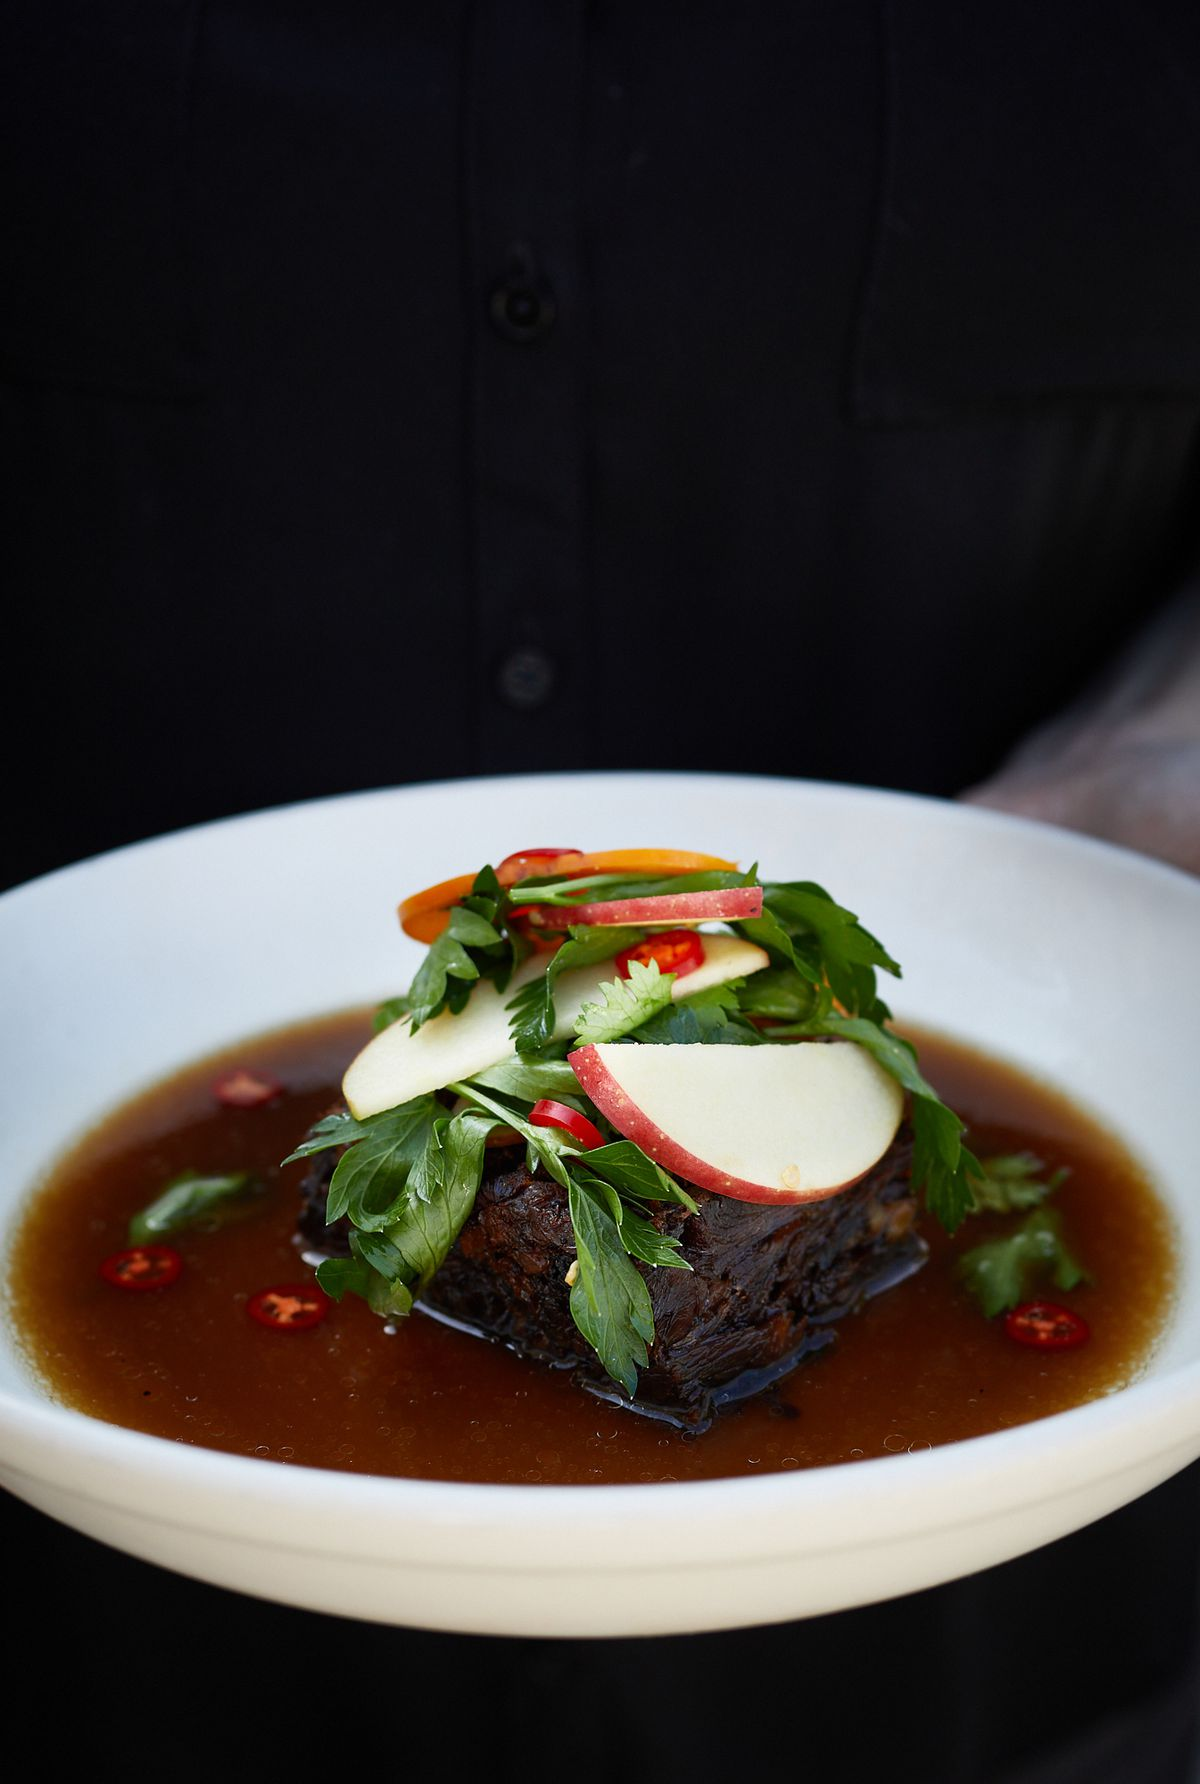 A white bowl filled with a dark brown broth with a cut of boar meat in the middle that is topped with sliced apples and leafy greens